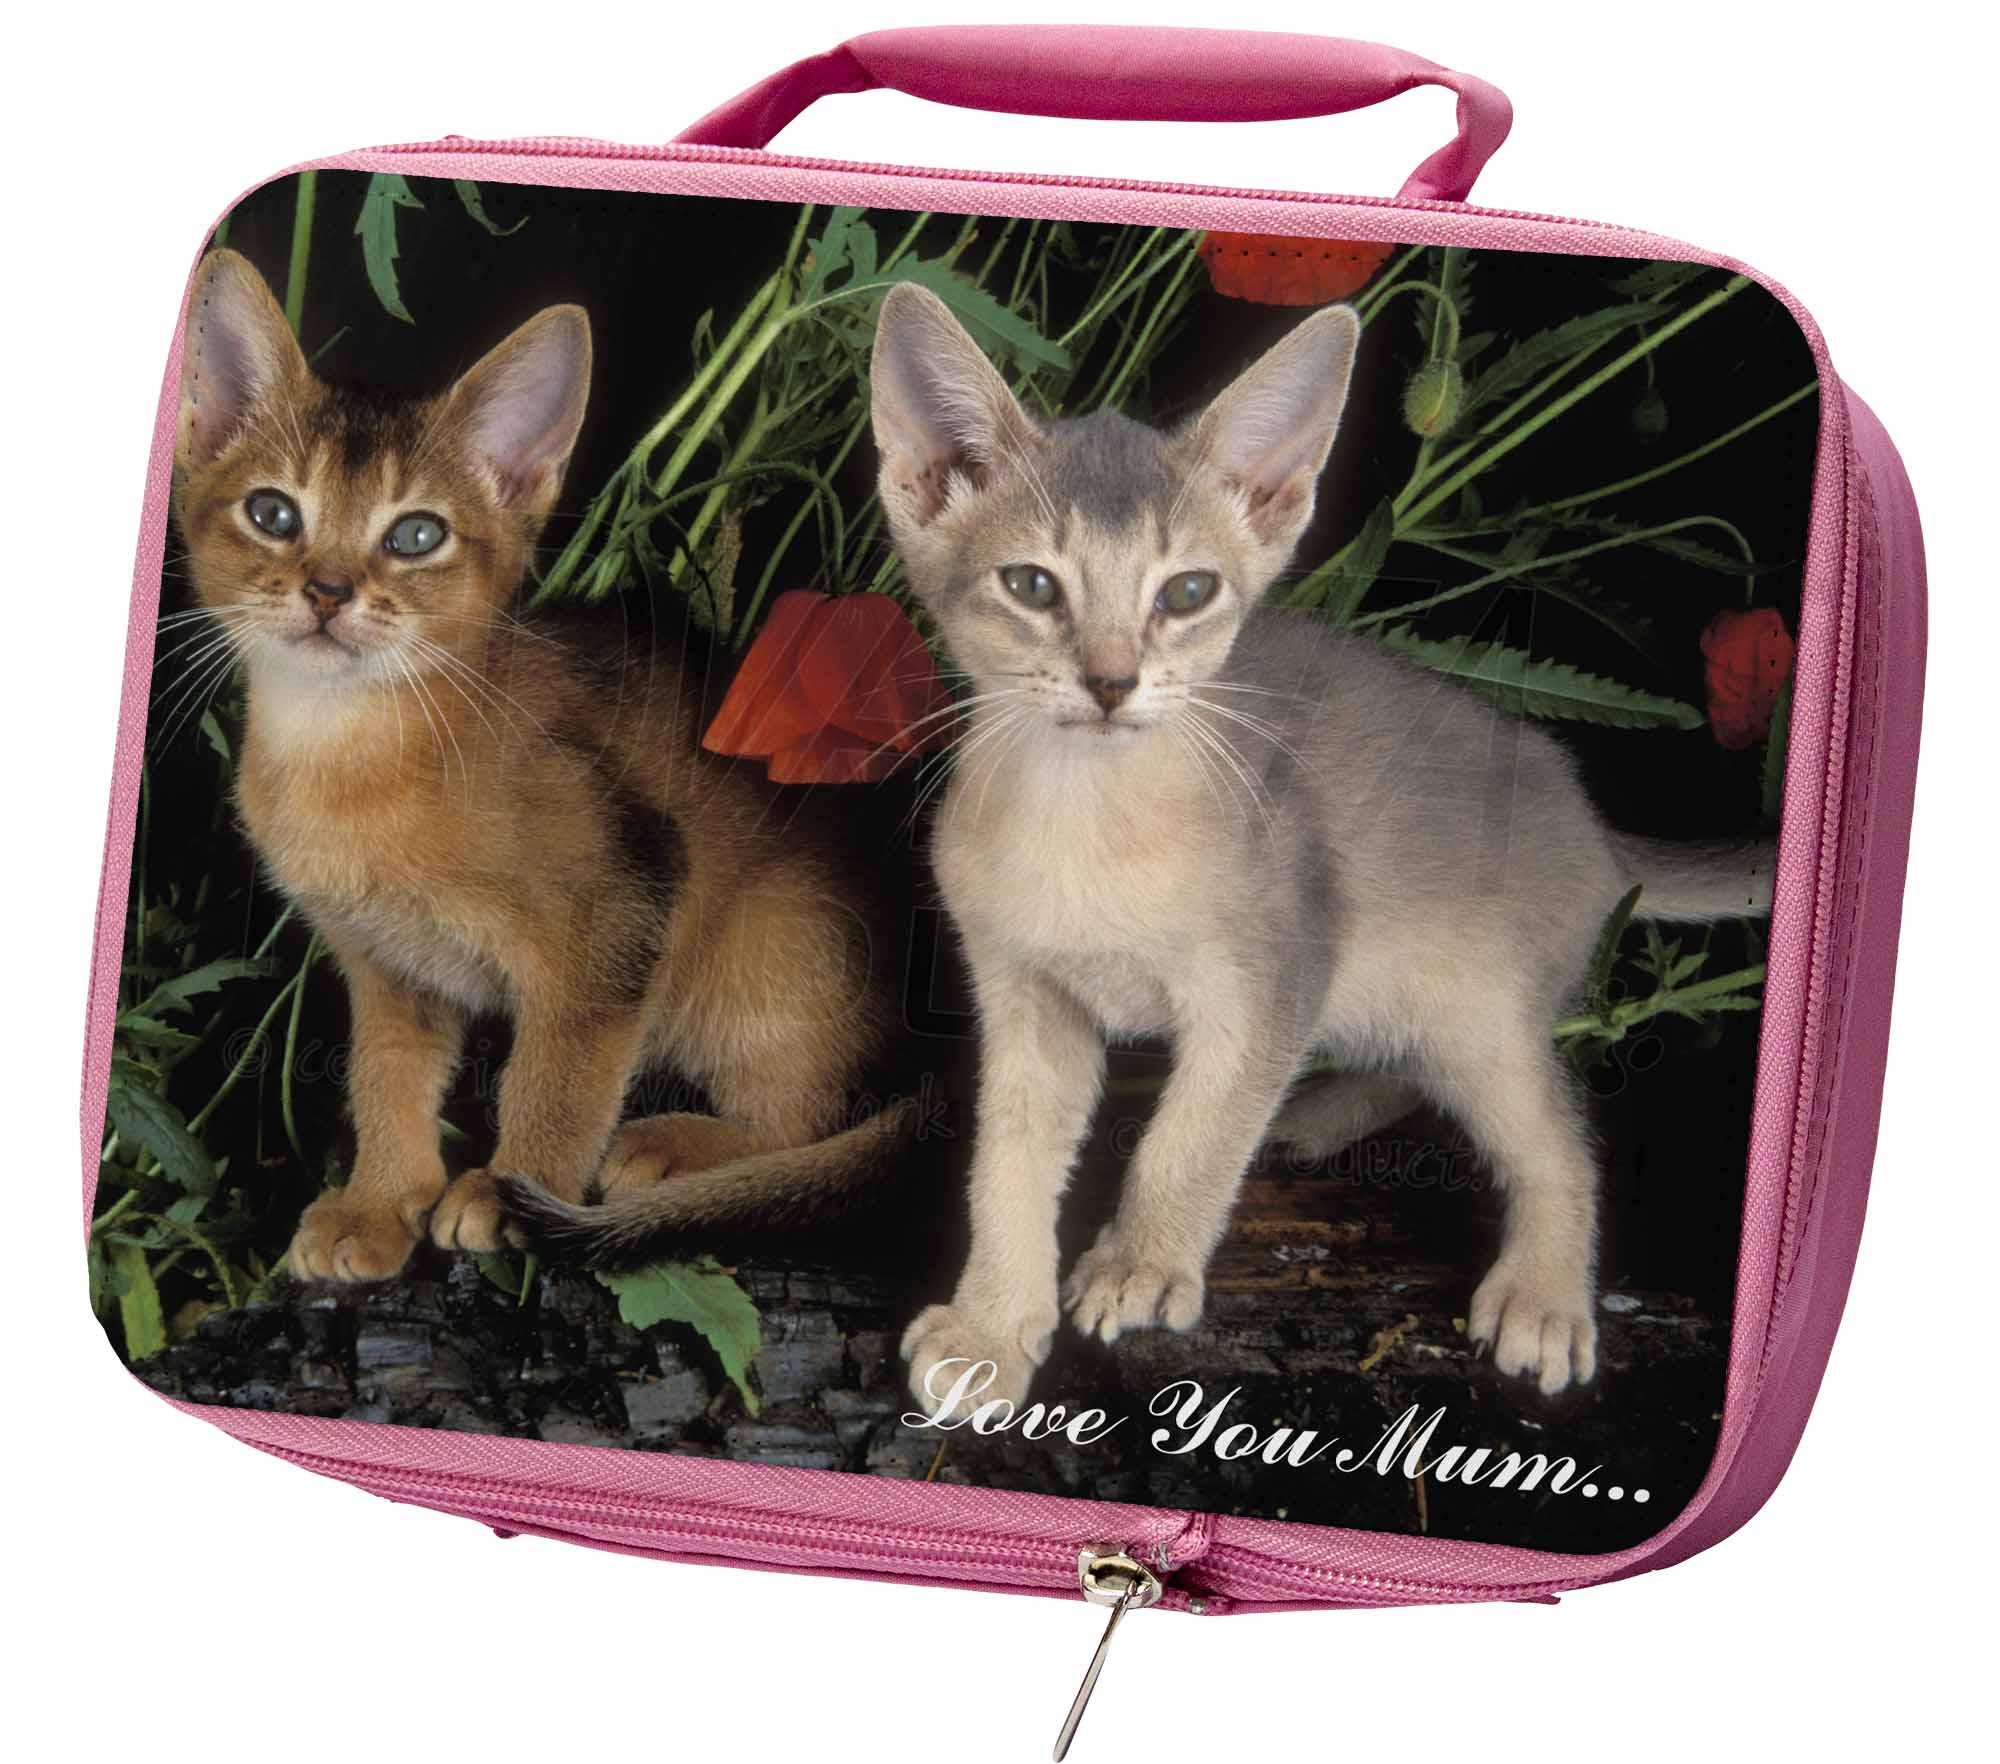 Abyssinian Cats 'Love You Mum' Insulated Pink School Lunch Box Bag, AC42lymLBP